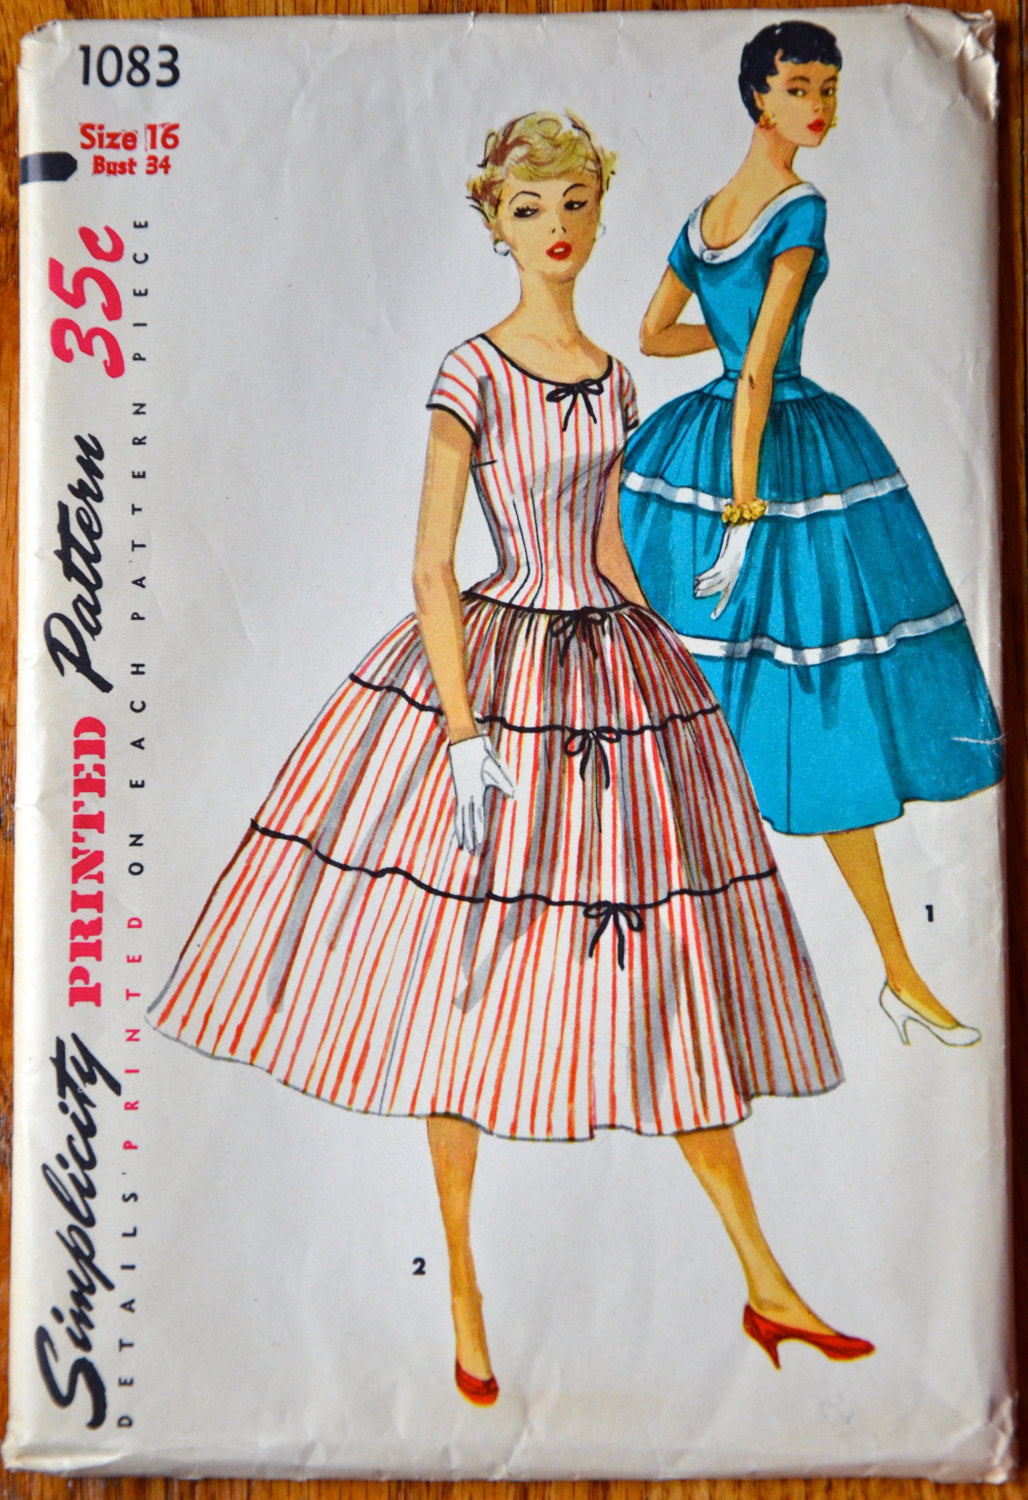 1950's Simplicity One Piece Dress with full, tiered skirt pattern - Bust 34